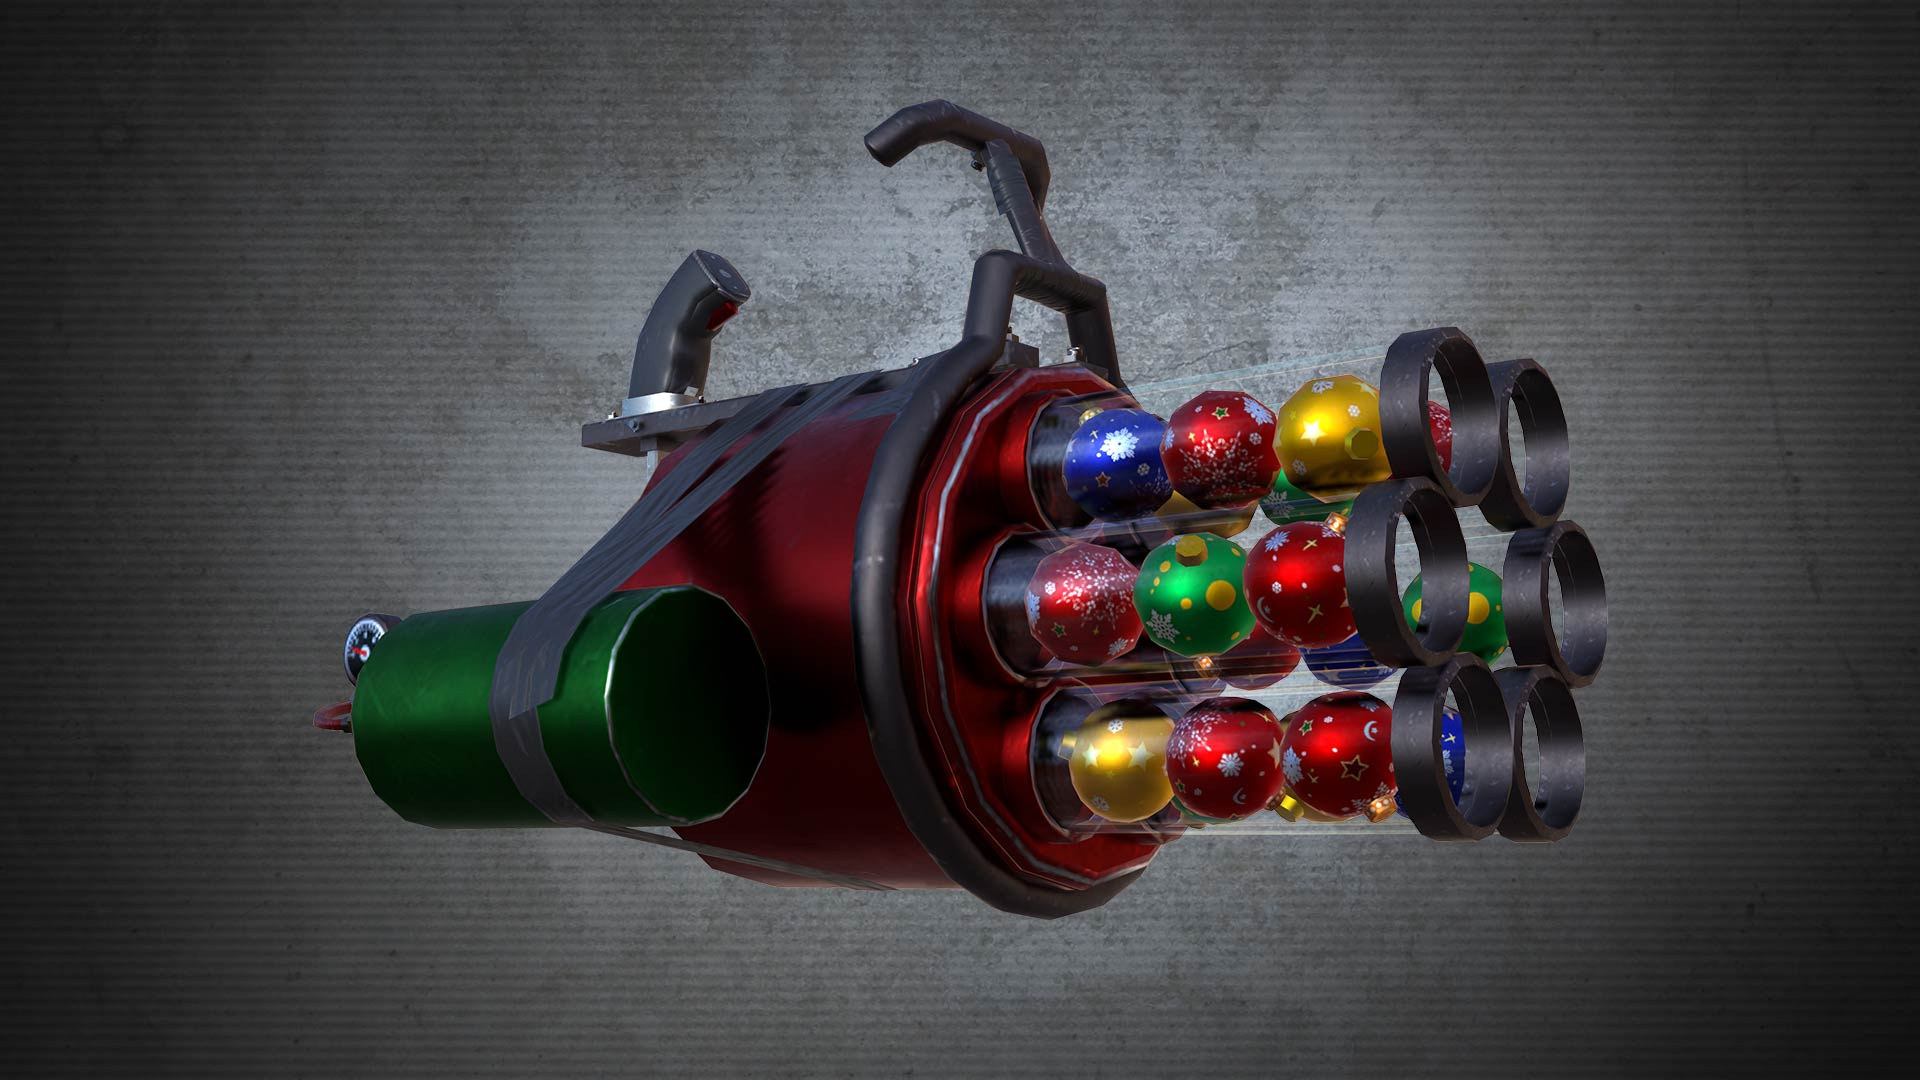 Dead rising 4 for xbox one xbox ornament gun malvernweather Images